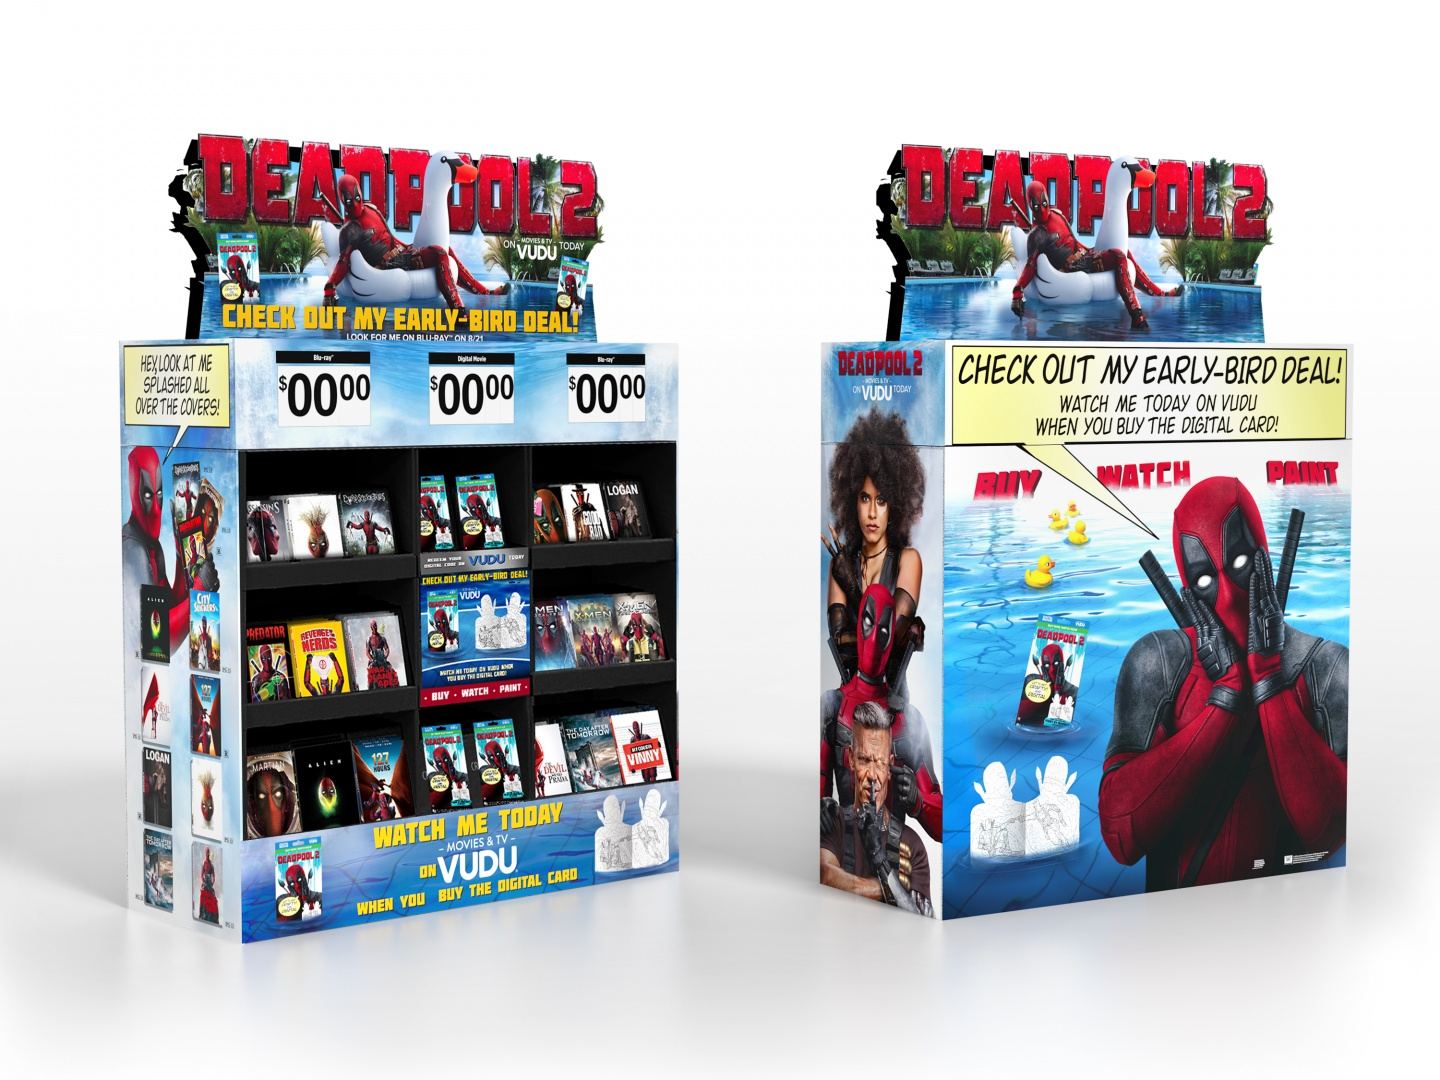 DEADPOOL 2 Home Entertainment Display: WT1 8/7 Digital Cube Thumbnail